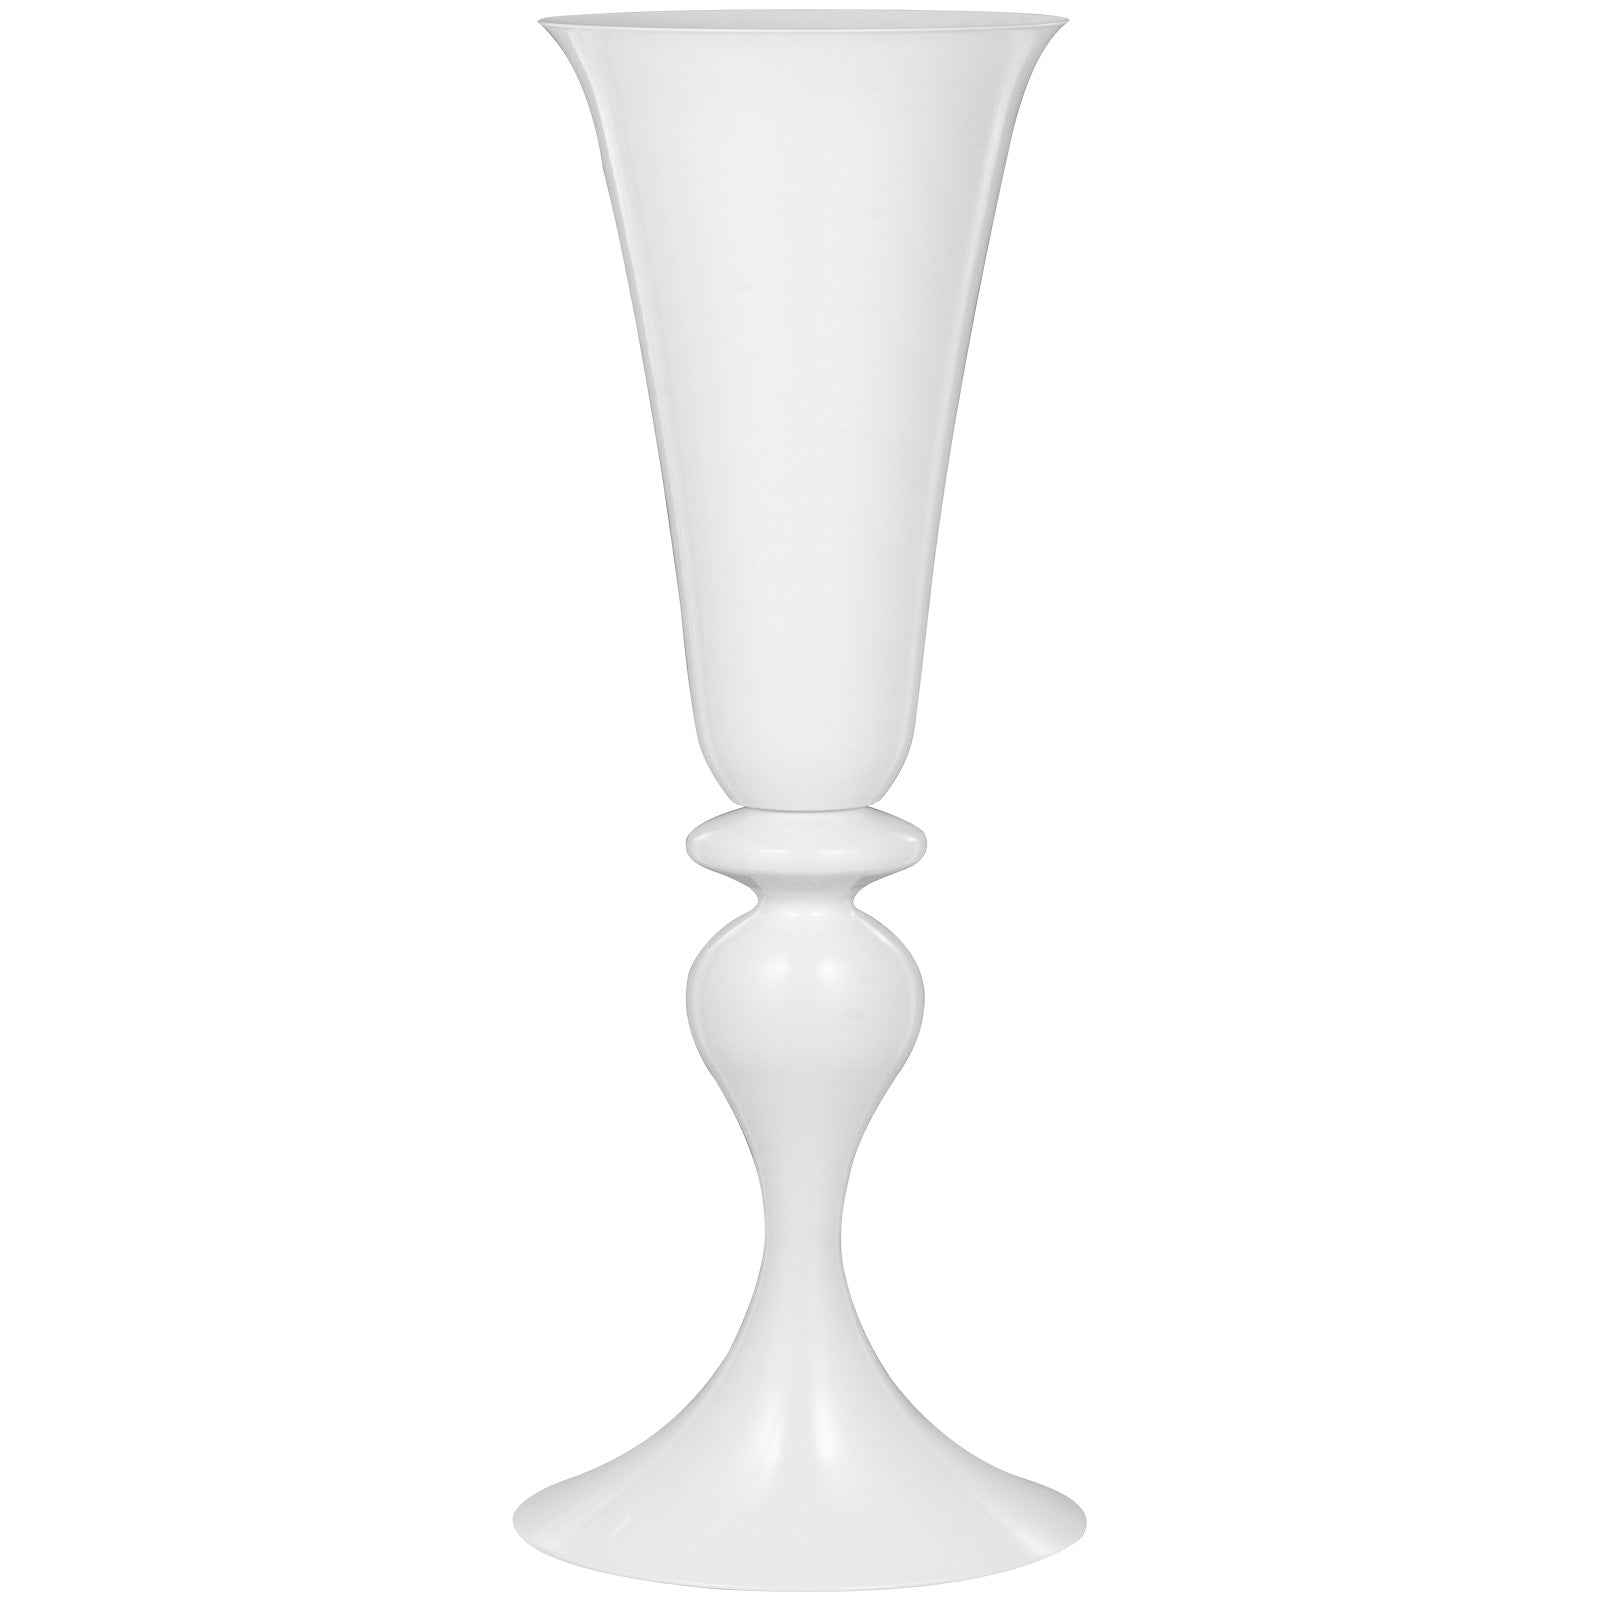 "White Trumpet Vase For Party Celebration Flower Vases Centerpiece 29.5"" Height"